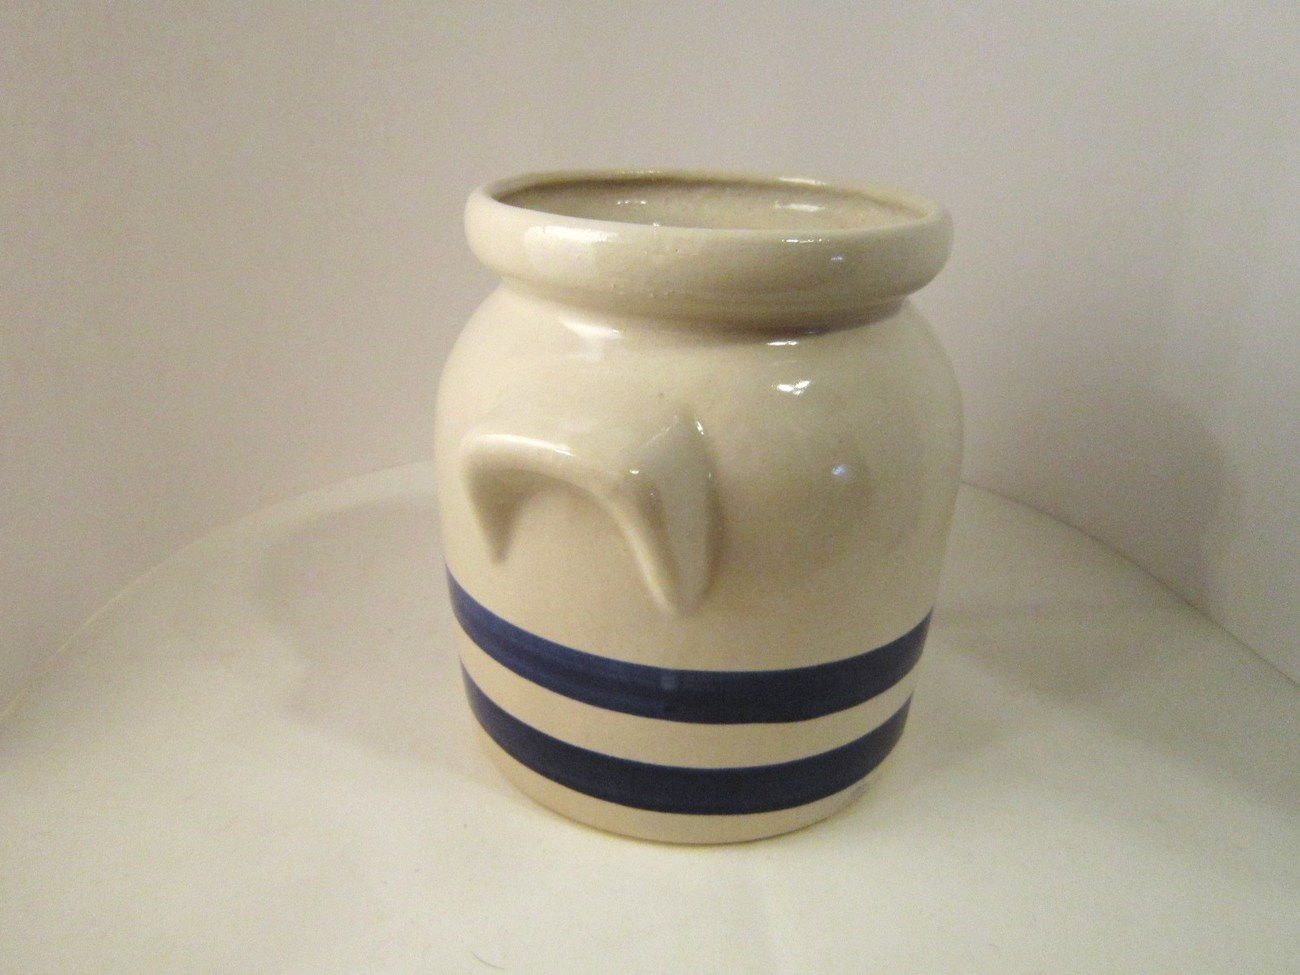 Robinson Ransbottom Stoneware Crock, Blue Stripes, RRP Co, Made in USA